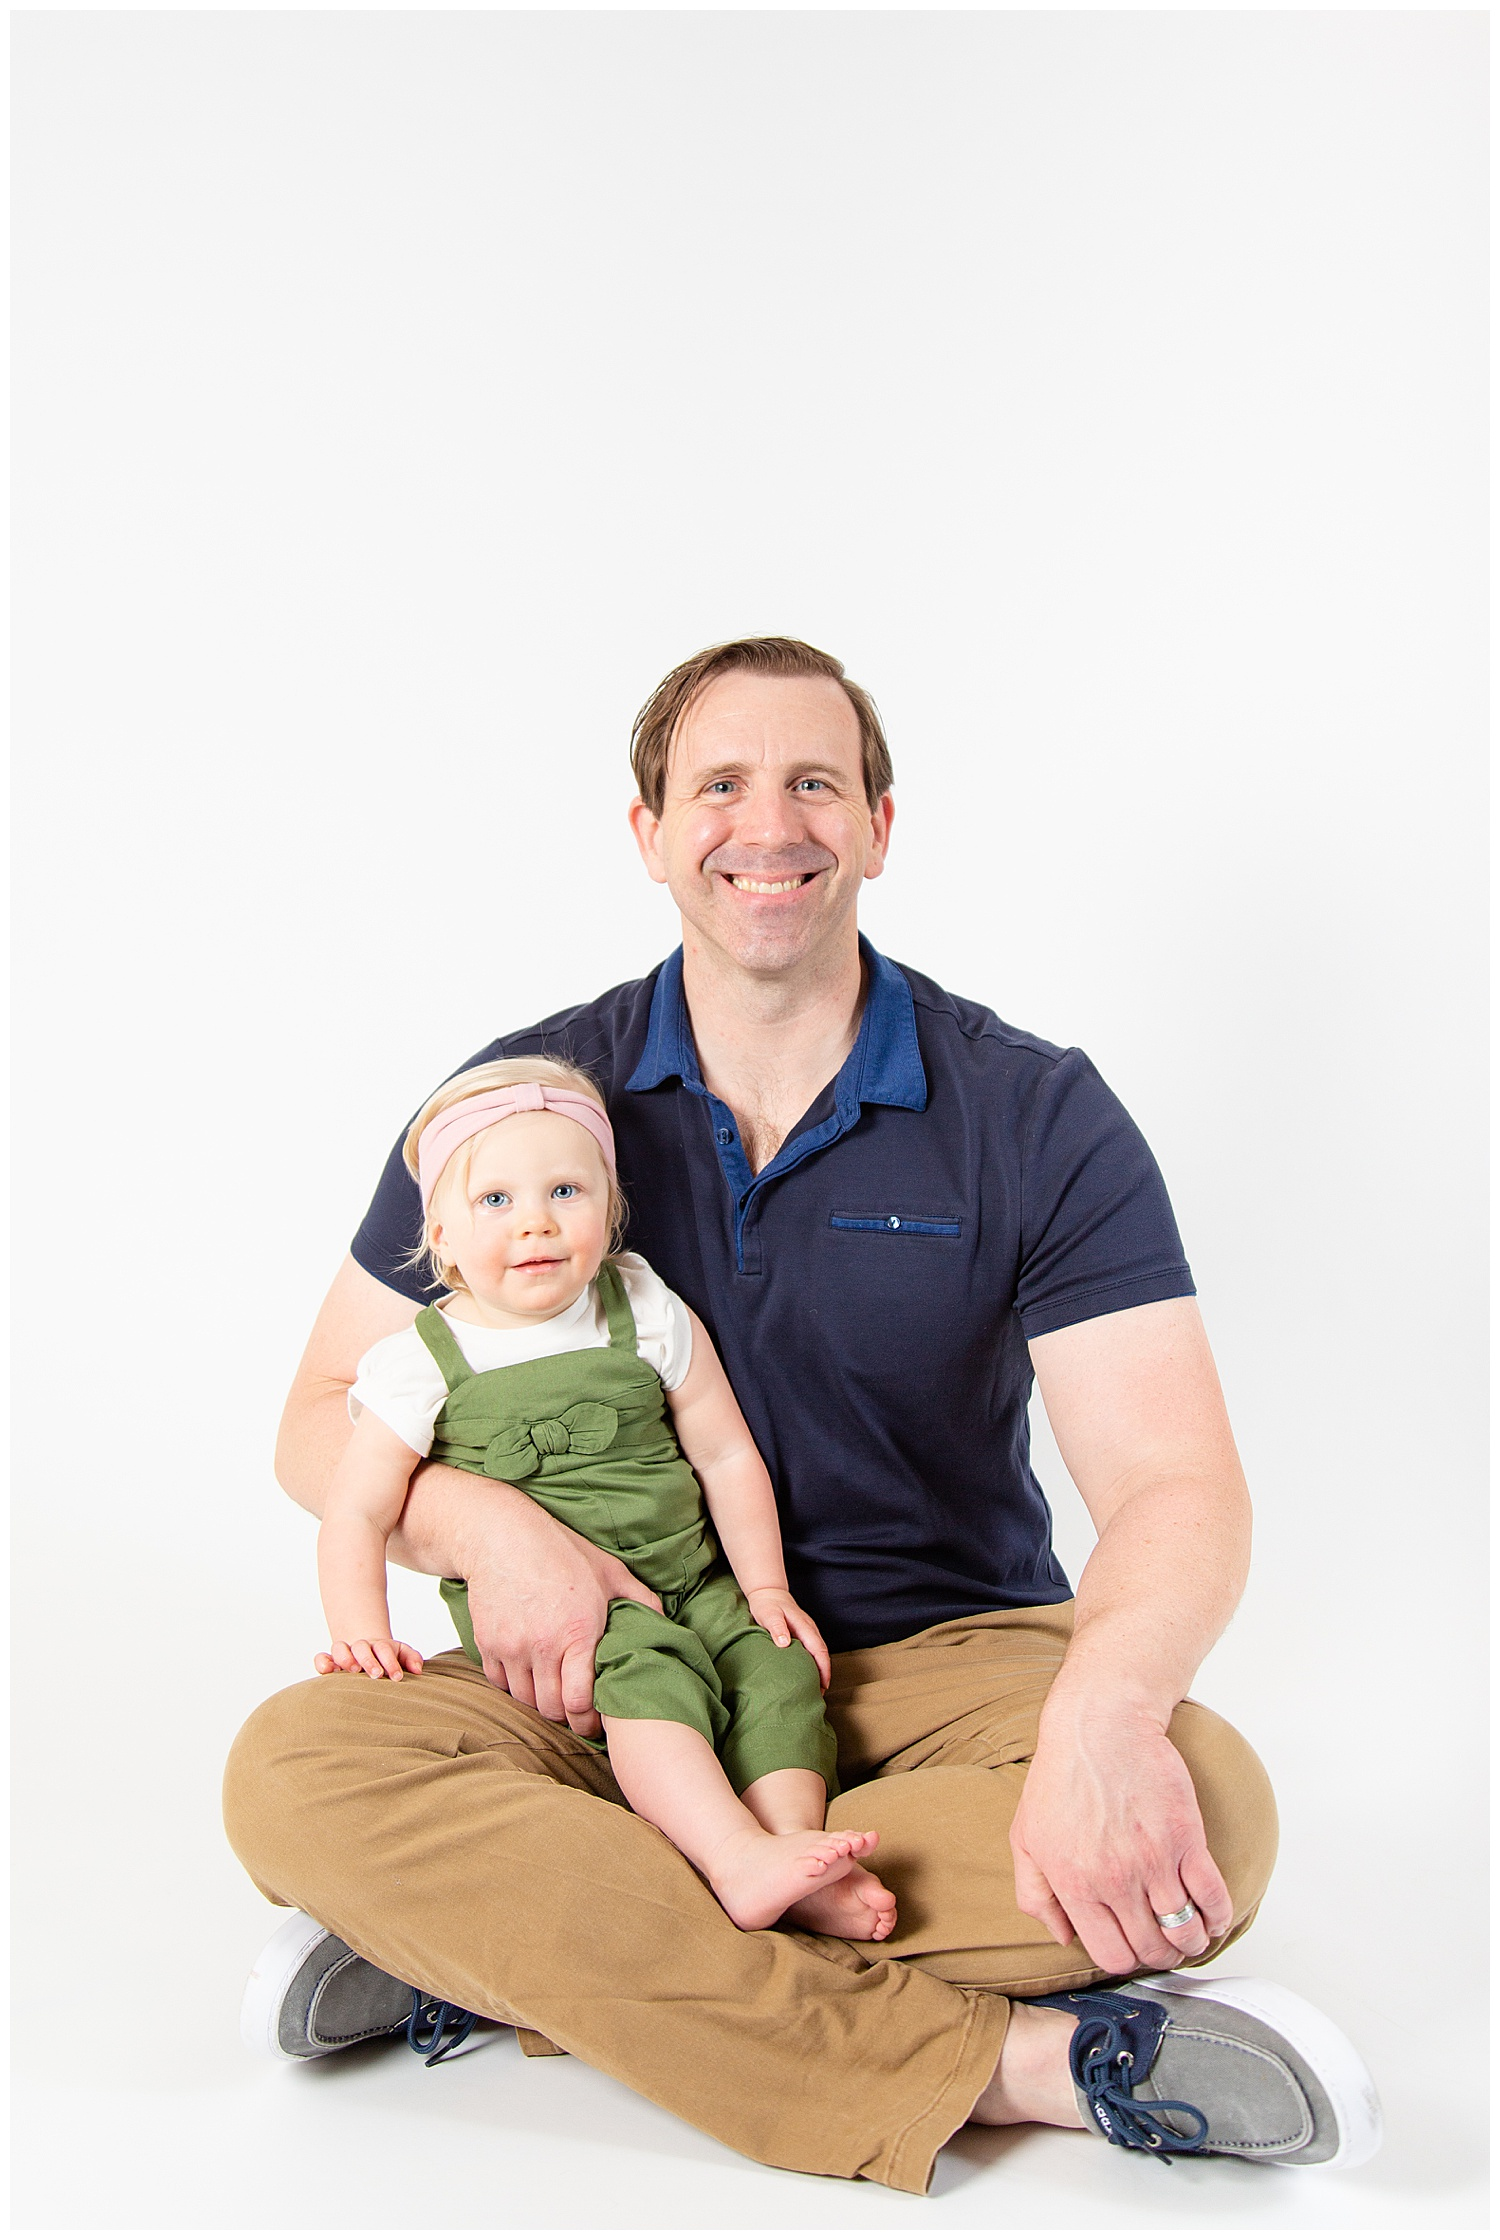 emily-belson-photography-family-session-04.jpg